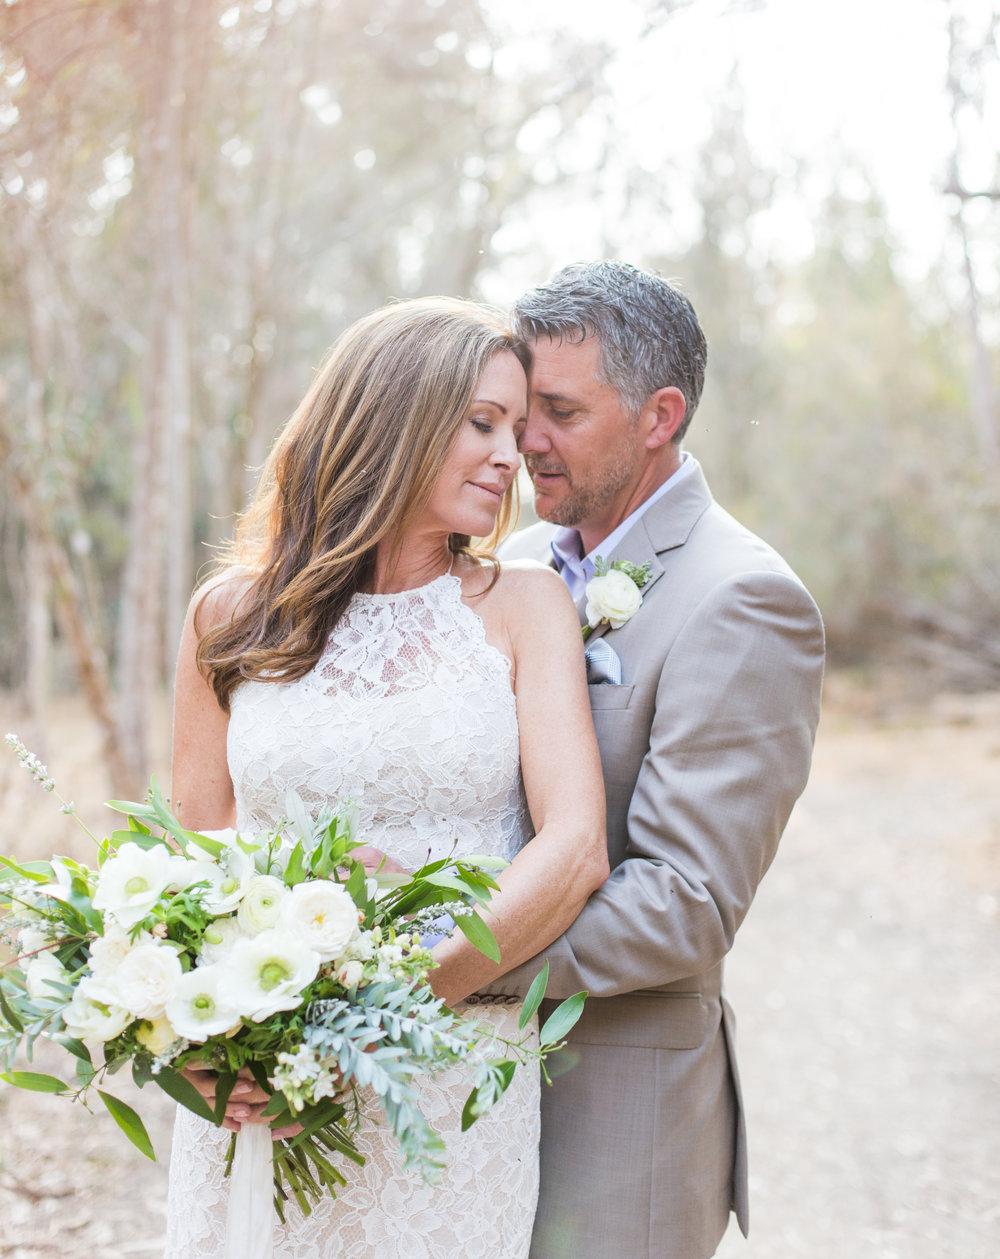 santa-barbara-elopement-elope-wedding-planner-coordinator-coordination-day-of-intimate-rustic-ellwood-bluffs-forest-beach-ocean-view-green-white-event (3).jpg